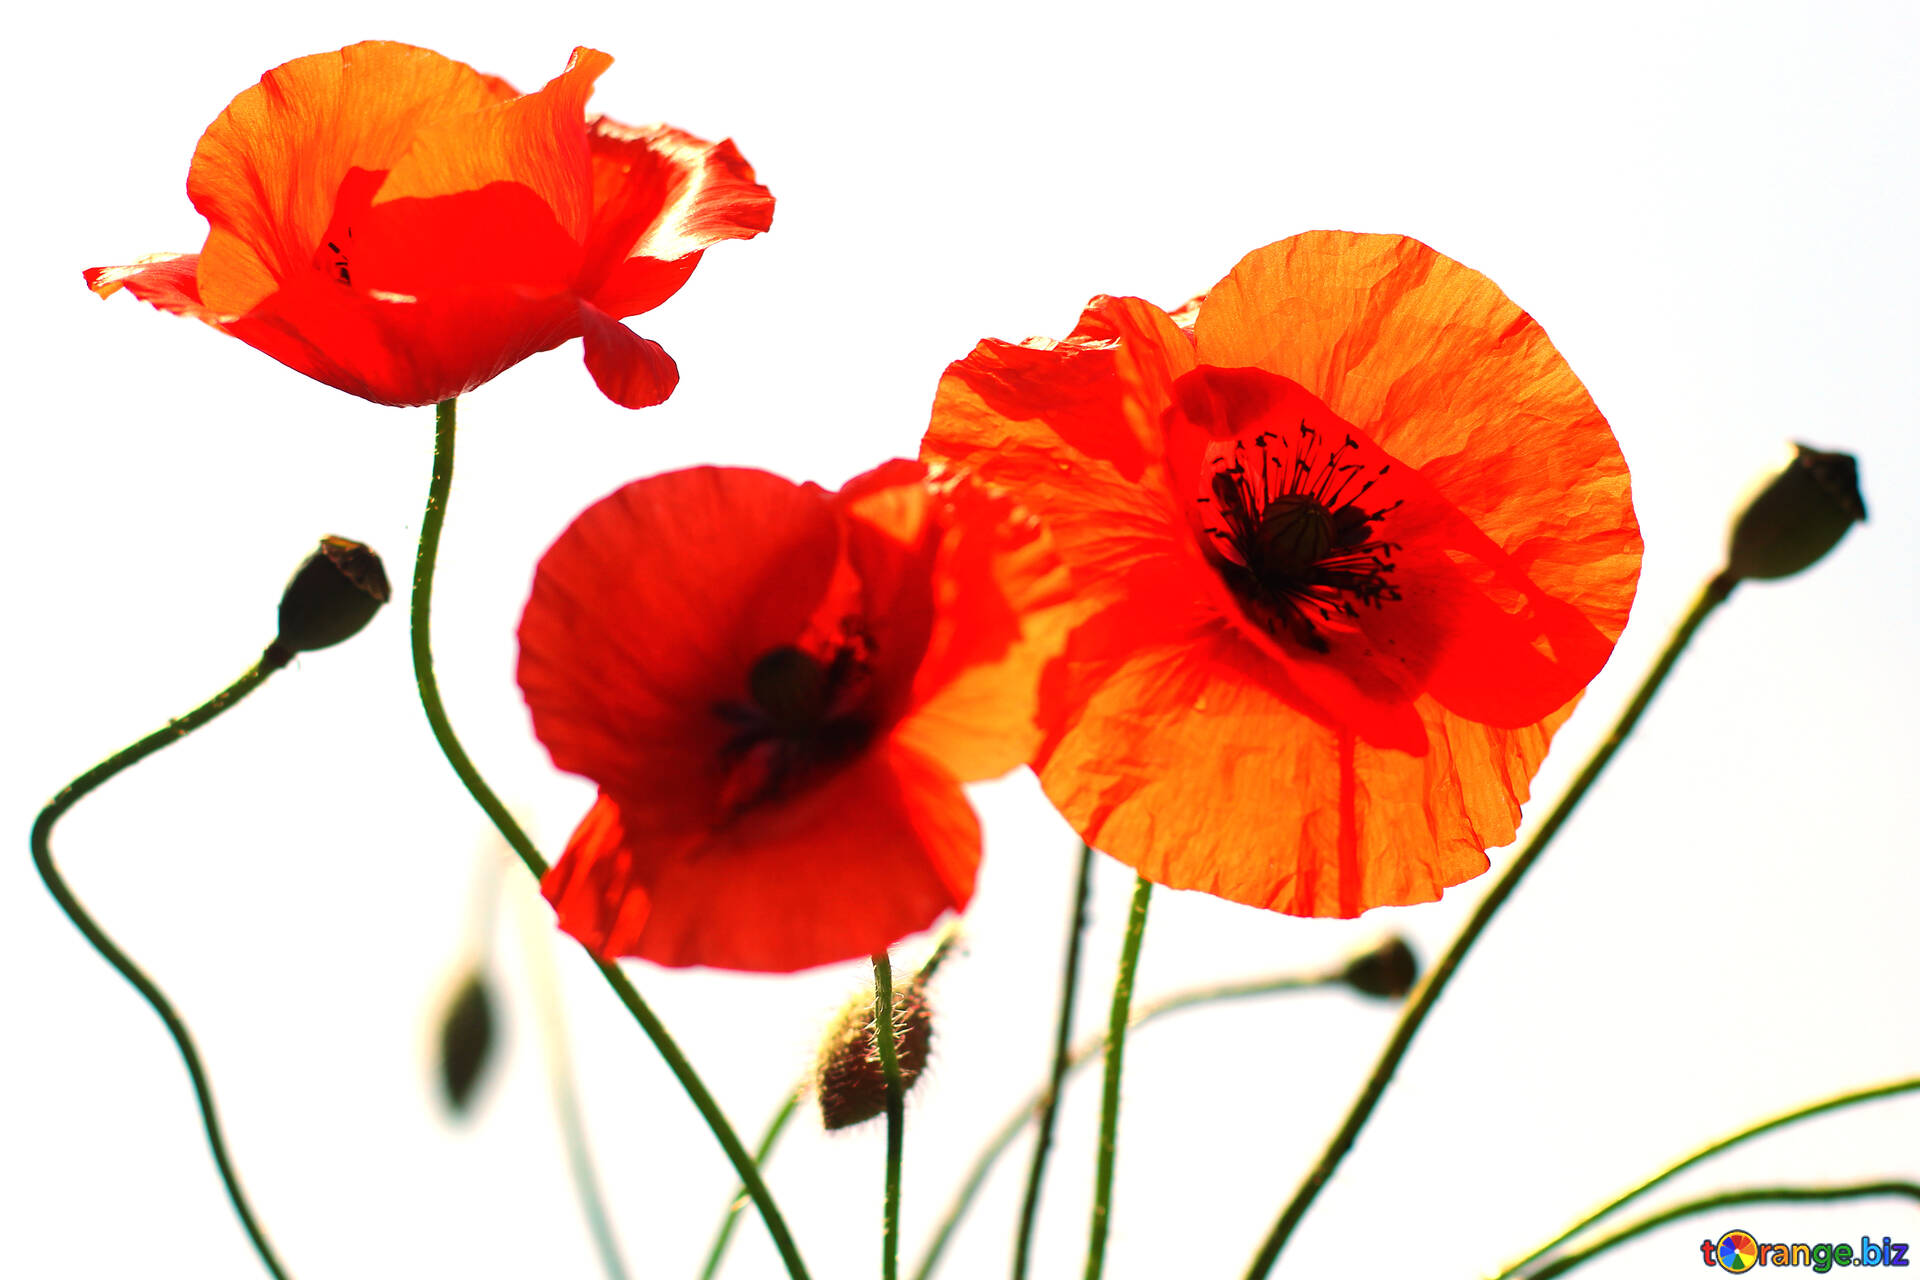 Flowers poppies isolated on a white background flowers of the download free image flowers of the poppies in hd wallpaper size 1920px mightylinksfo